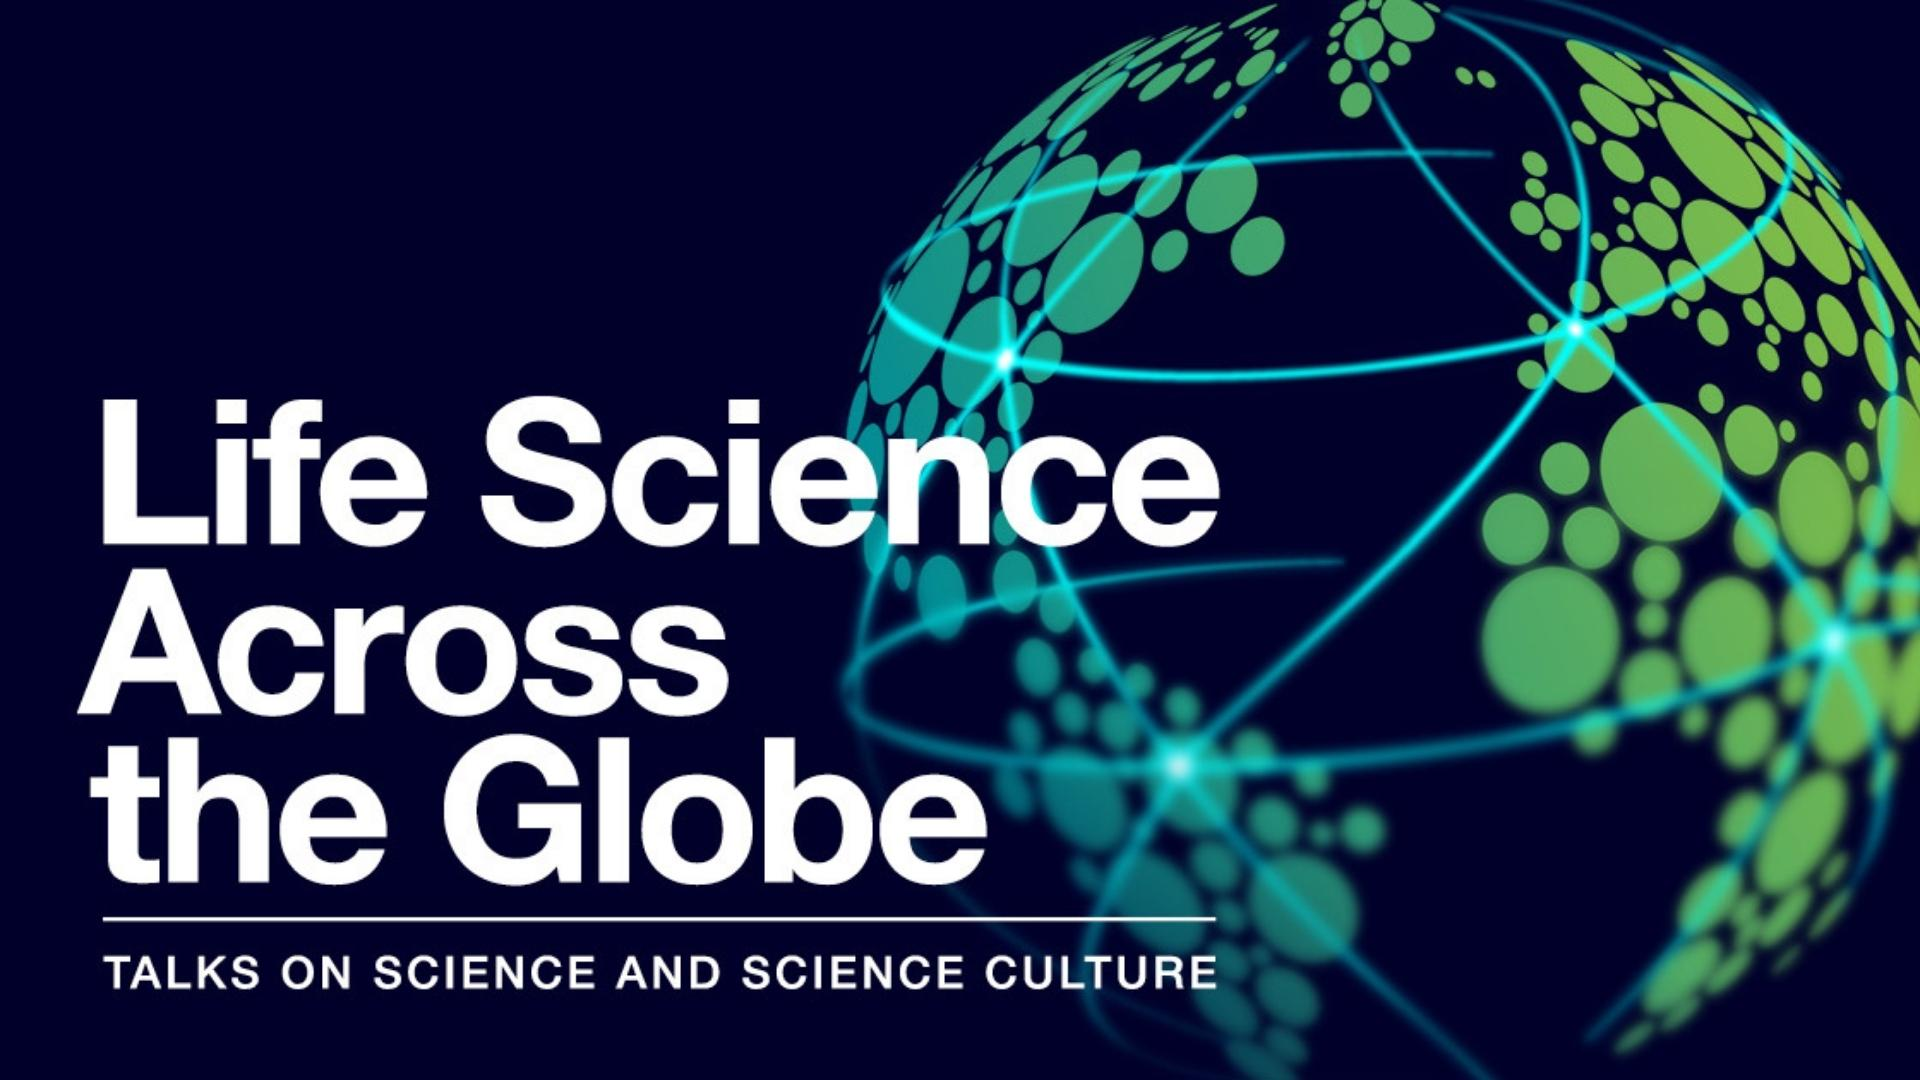 Life Sciences Across The Globe title image with globe graphic